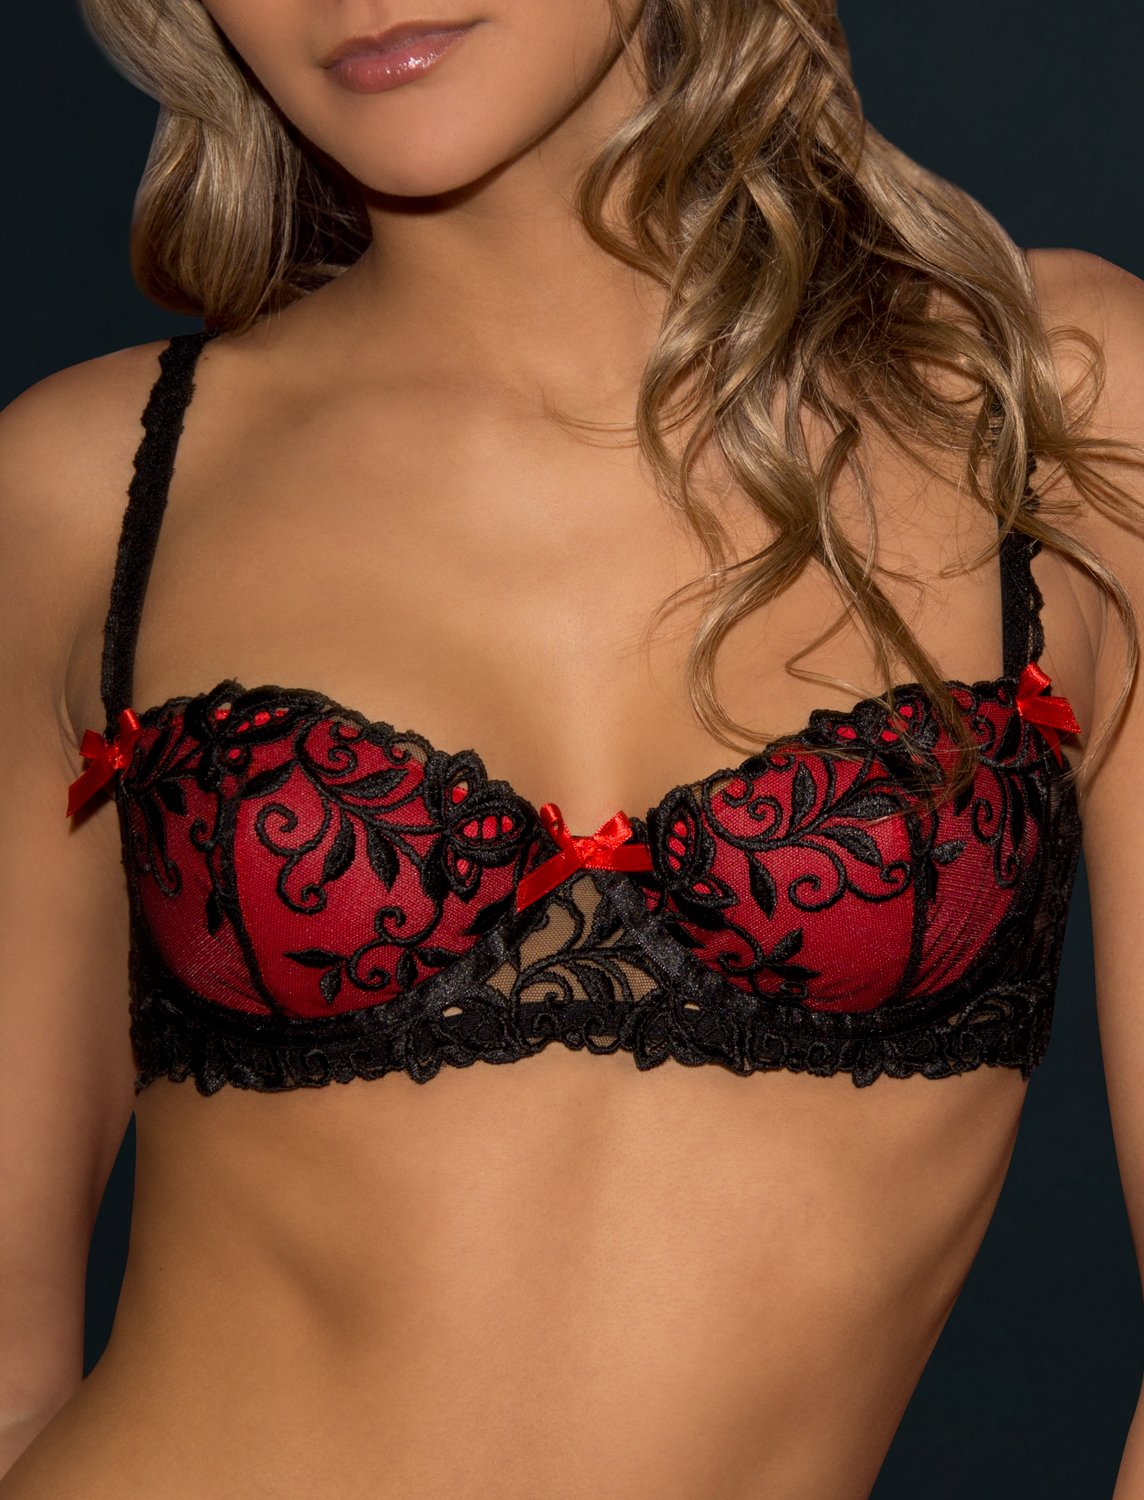 Peche red/black padded bra. Made in France 32A